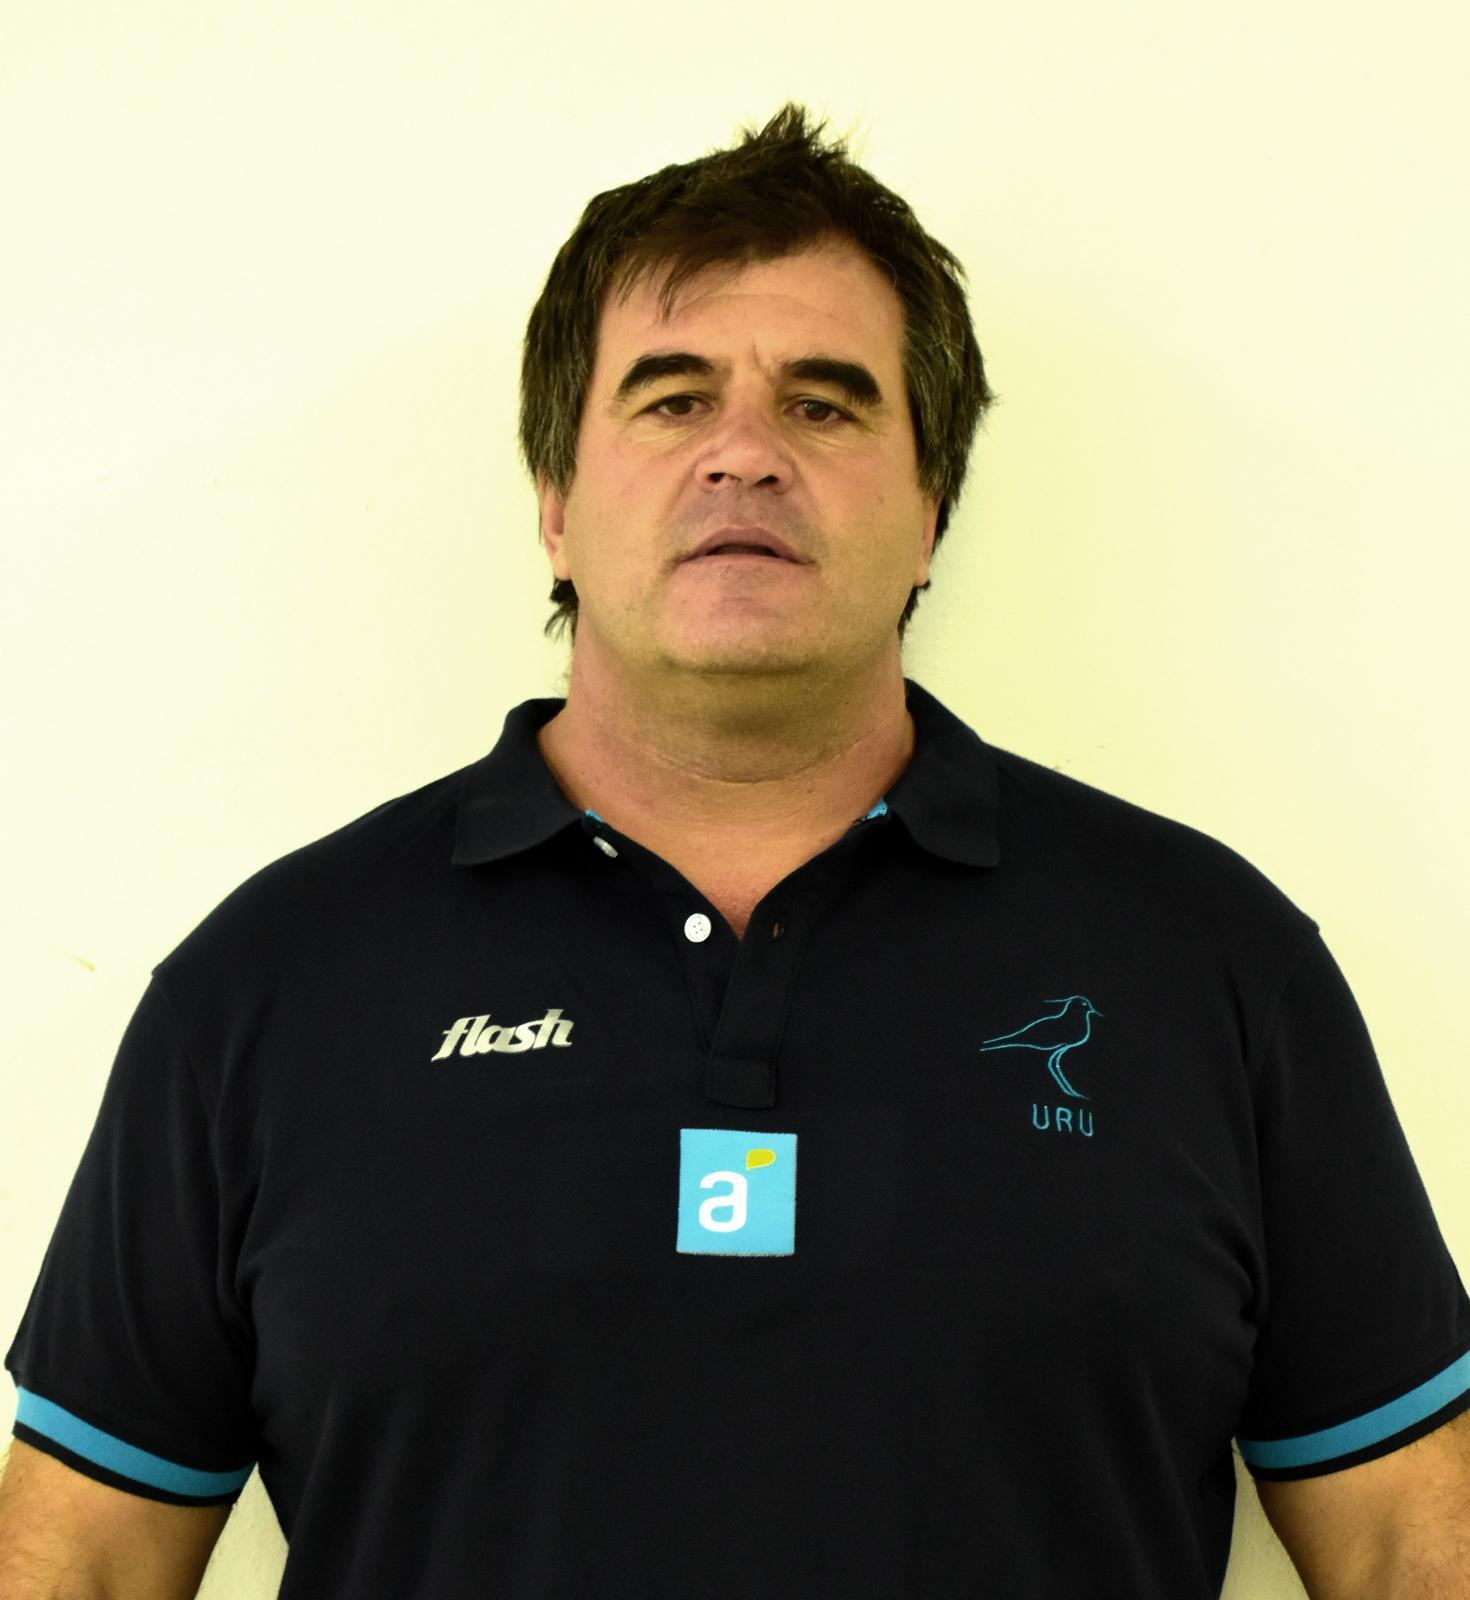 Guillermo Storace